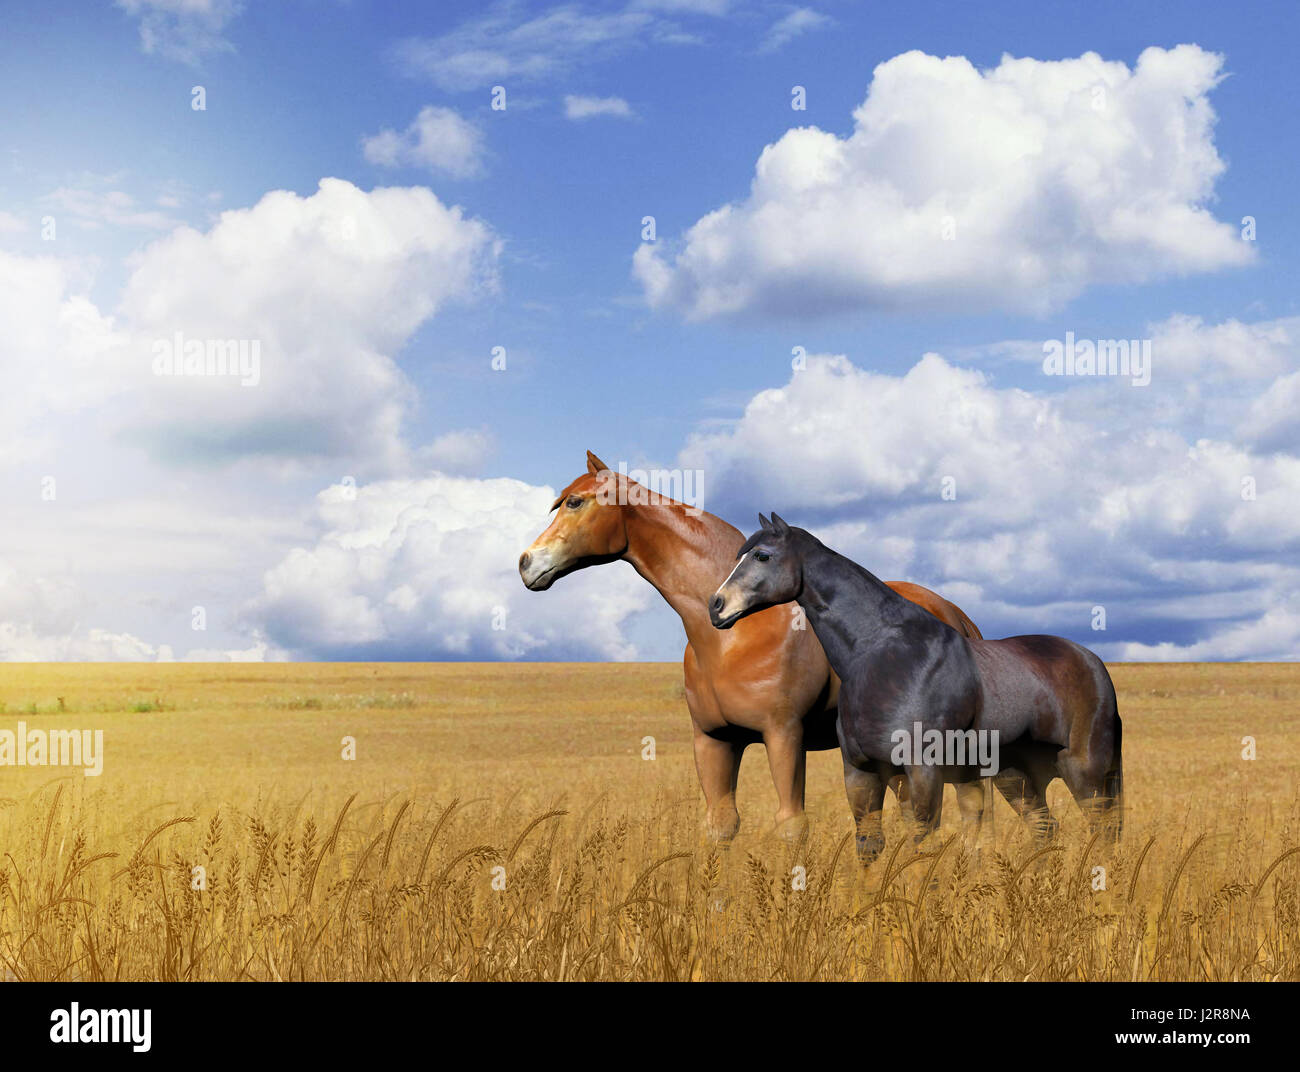 3D painting of a beautiful horses standing in a golden wheat field against a cloudy sky. - Stock Image